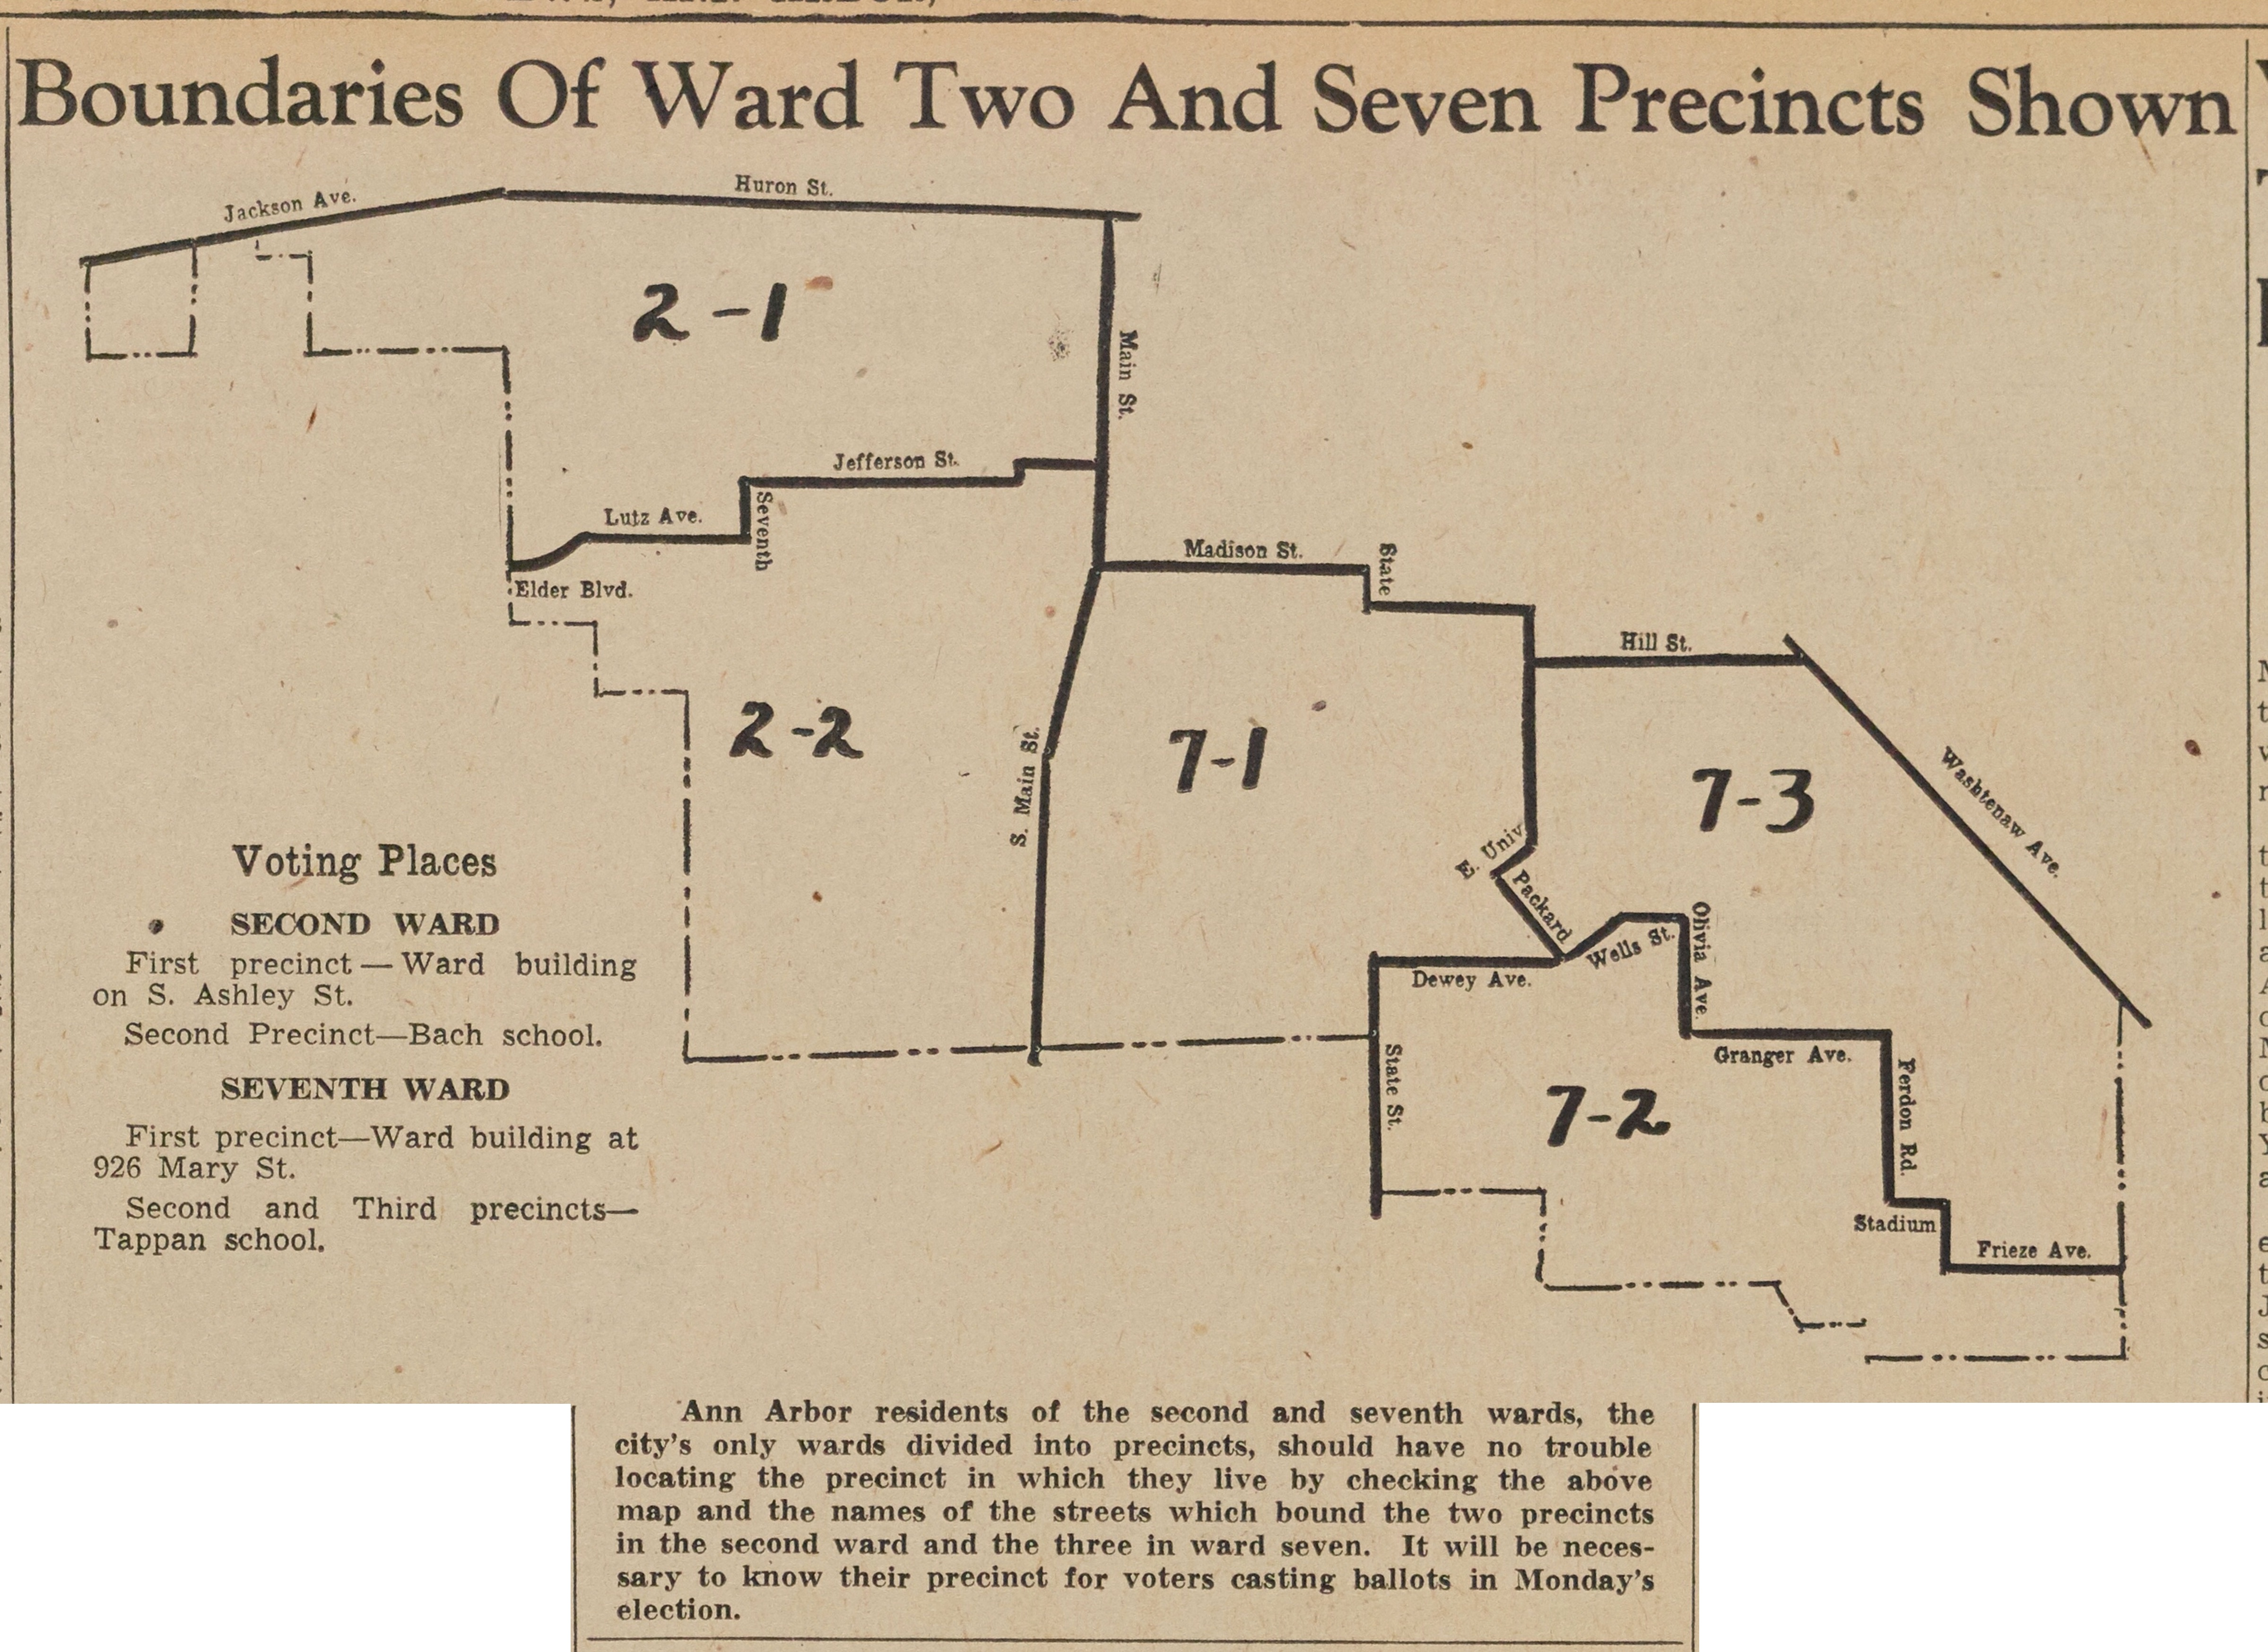 Boundaries Of Ward Two and Seven Precincts Shown image